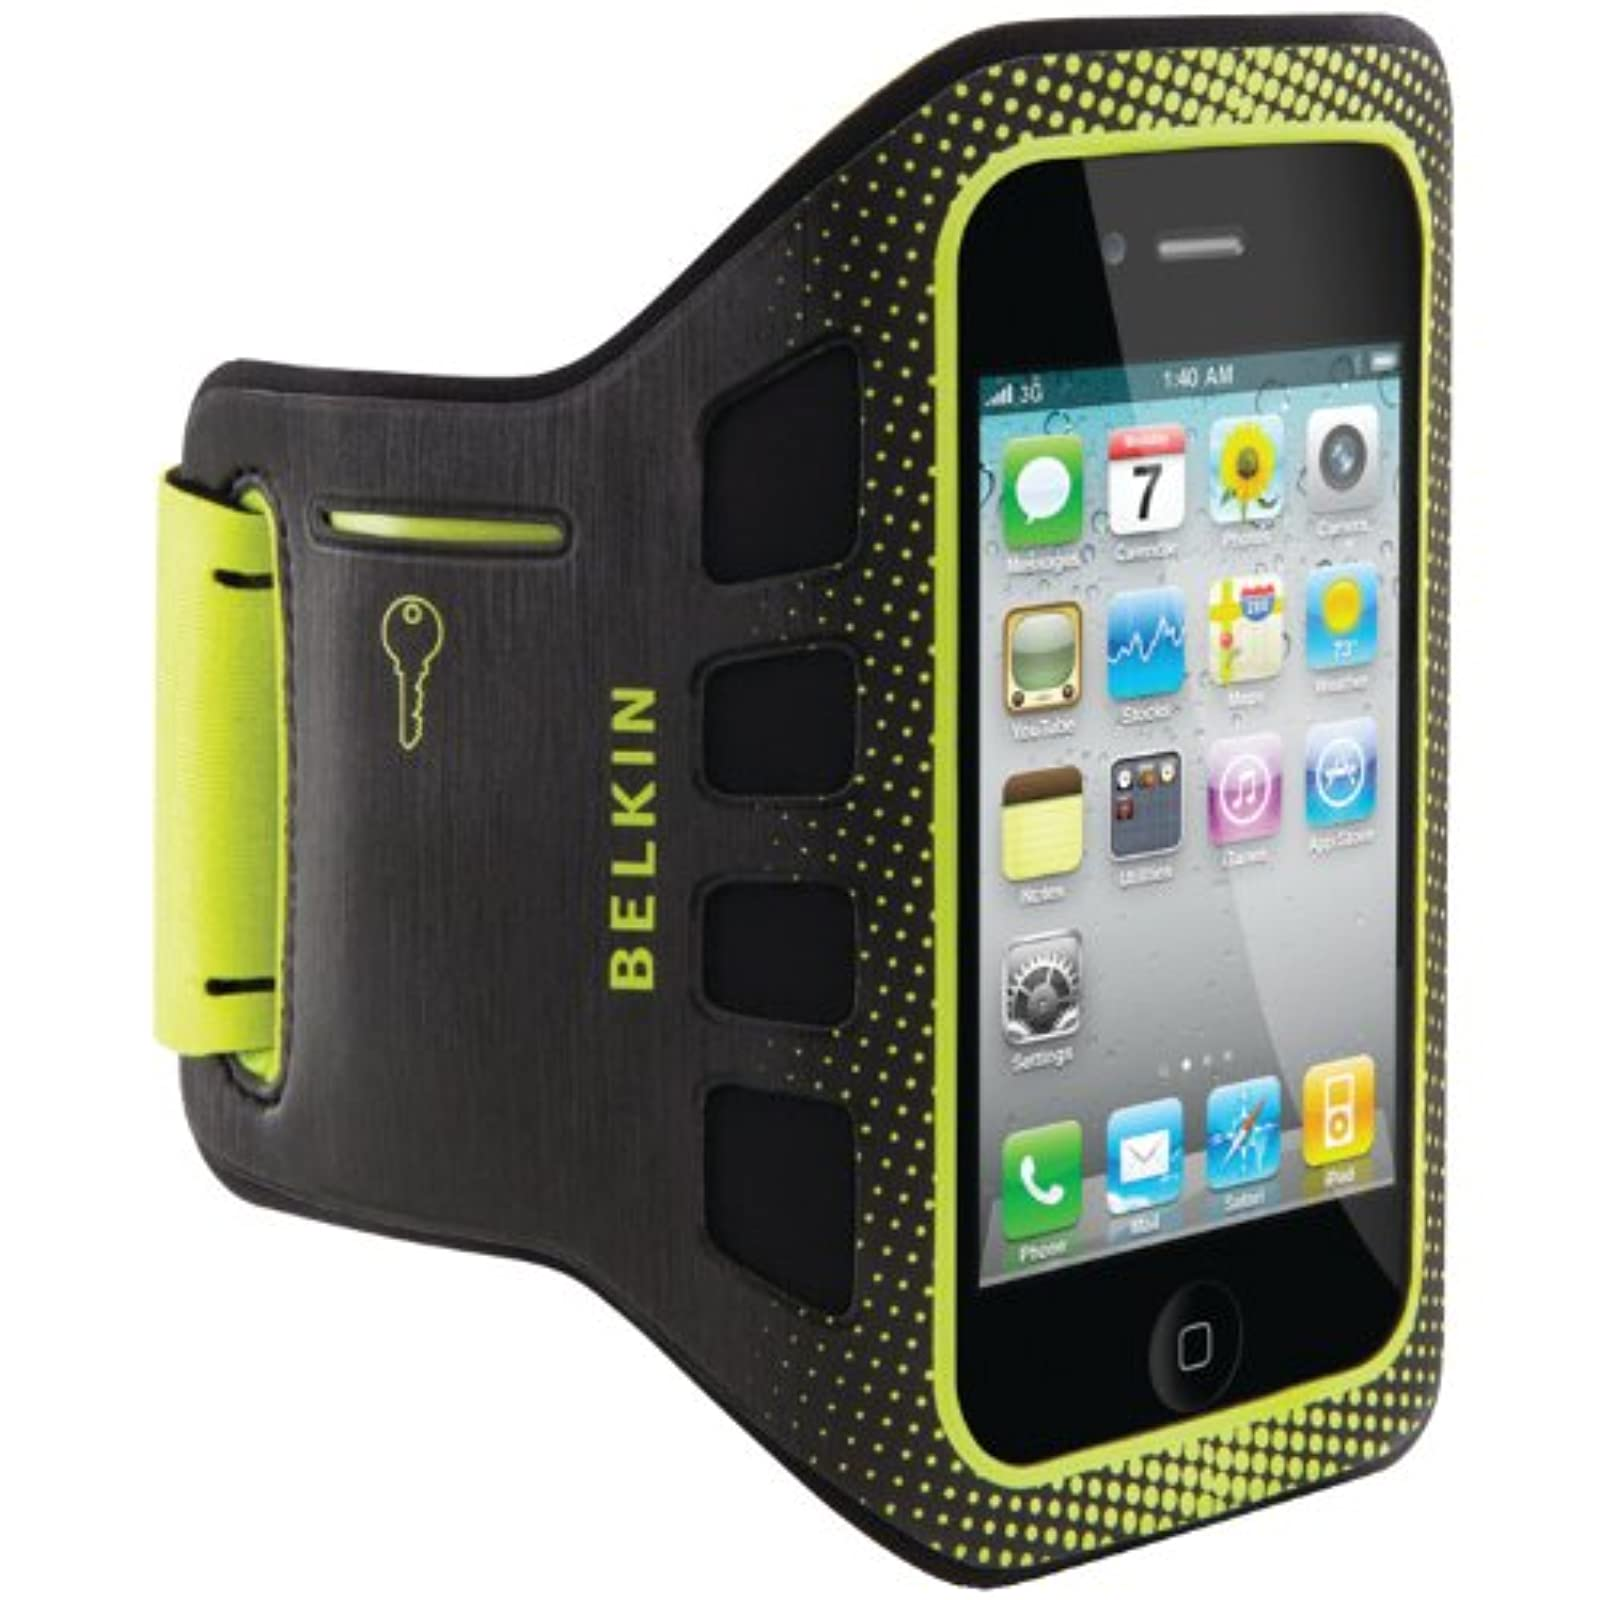 Belkin Easefit Sport Armband For Apple iPhone 4/4S Black / Limelight Multi-Color